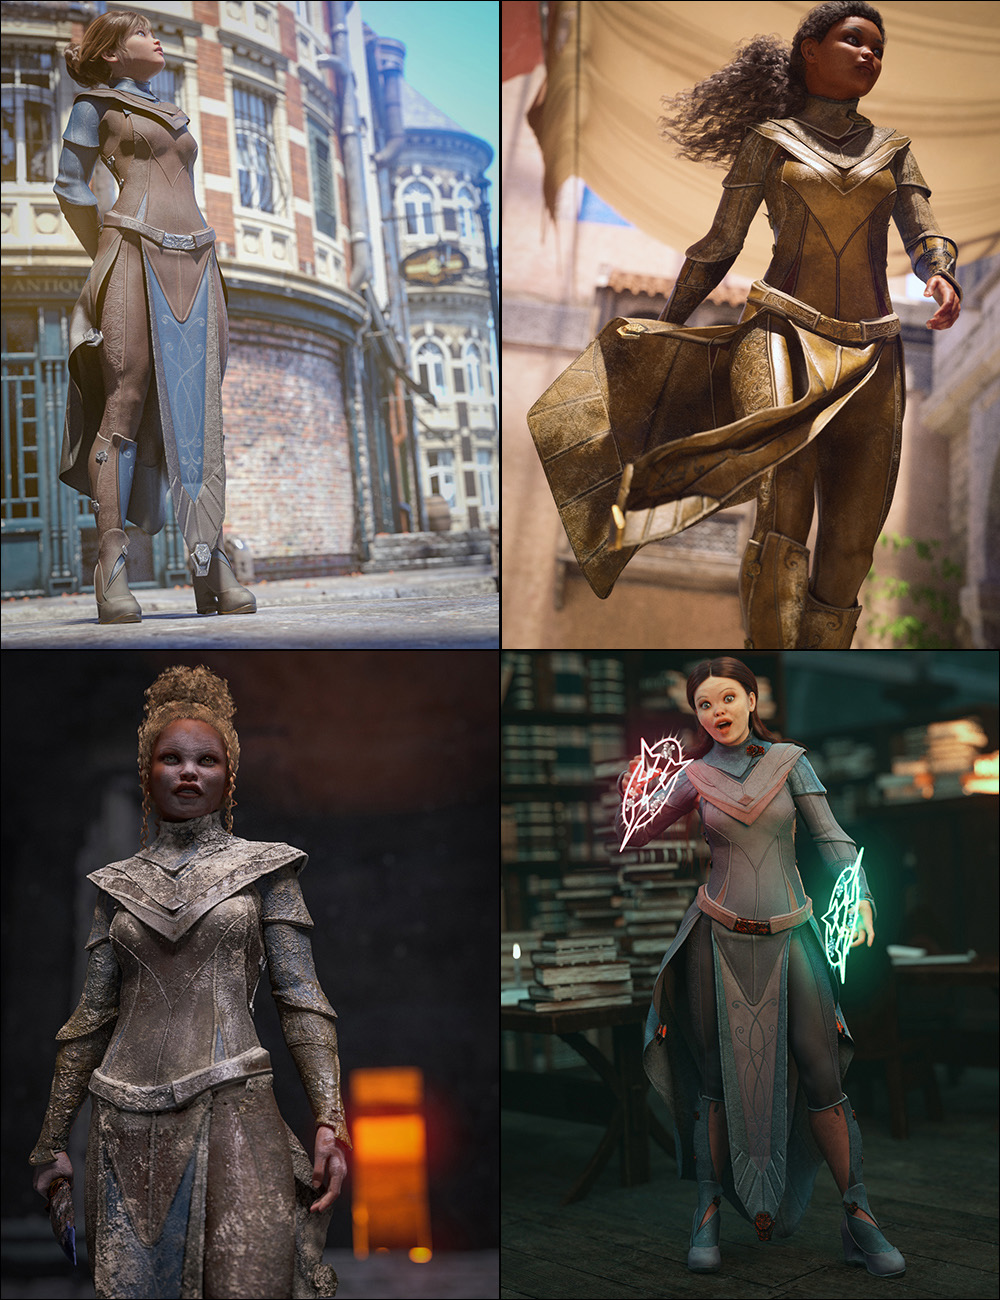 The Hands-On Historian Fantasy Styles for Ekialys' Ny by: Aeon Soul, 3D Models by Daz 3D